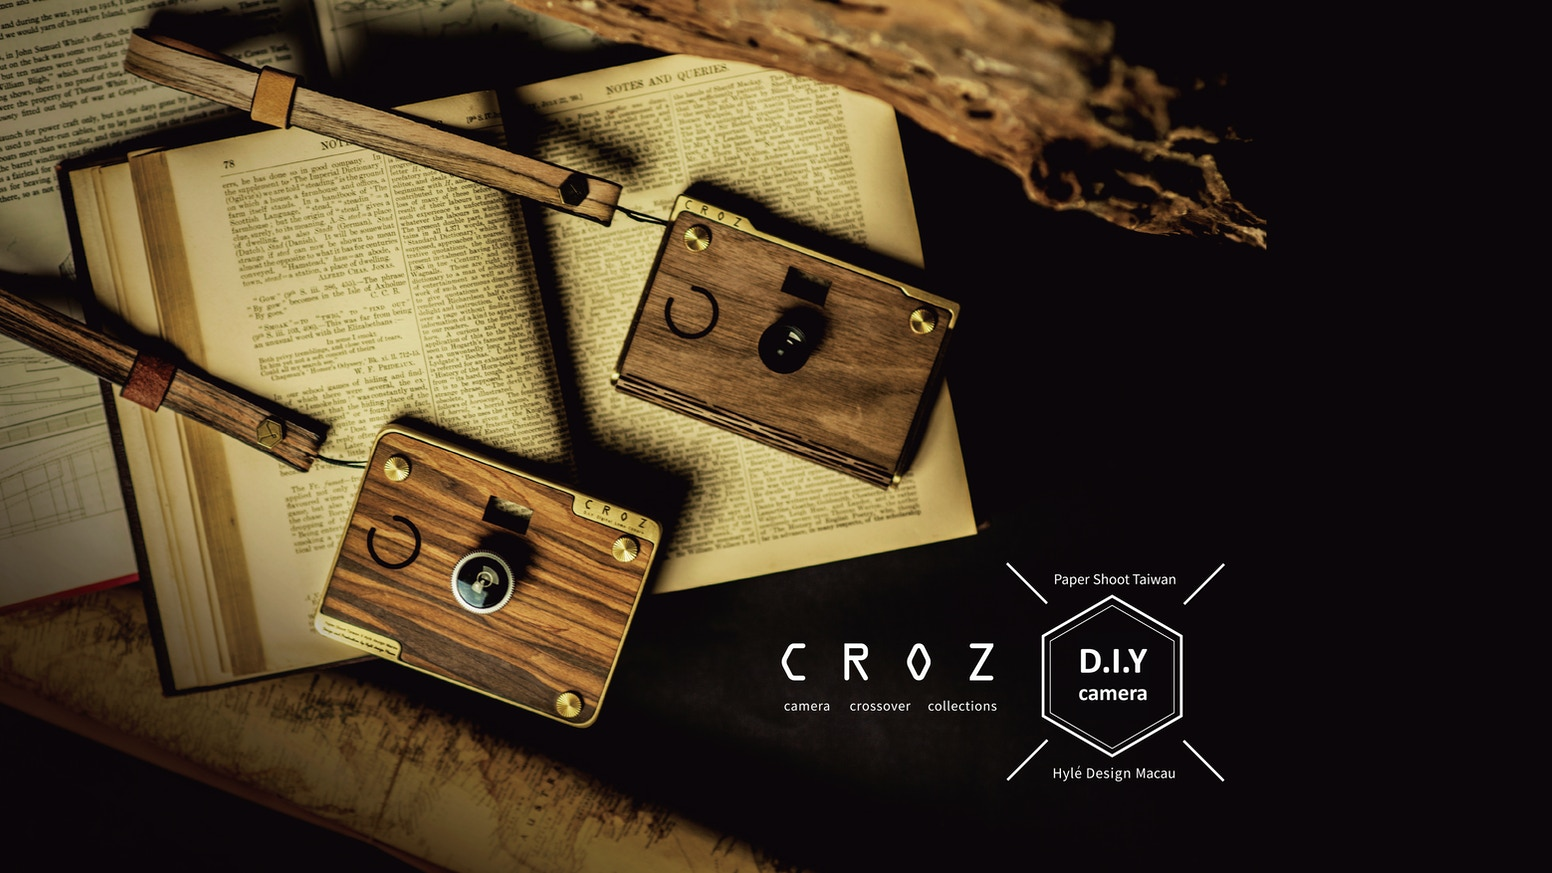 The idea of the CROZ is to combine users experience, the beauty and texture of the materials; CROZ is a meeting point of elegant design